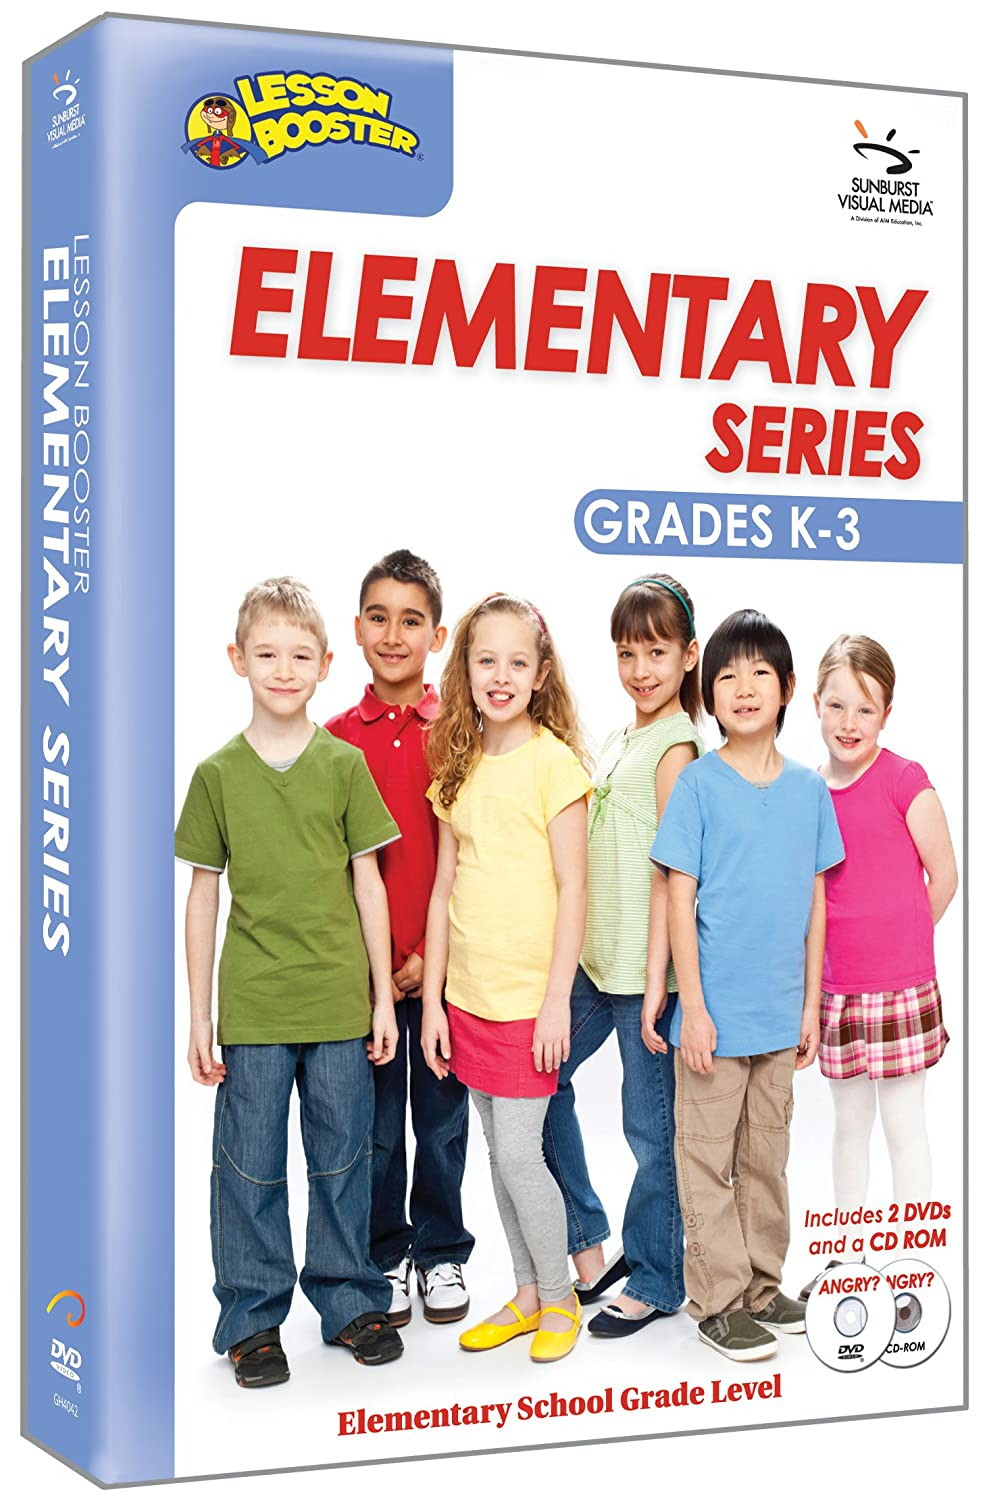 Lesson Booster Selling and selling Series Elementary National products